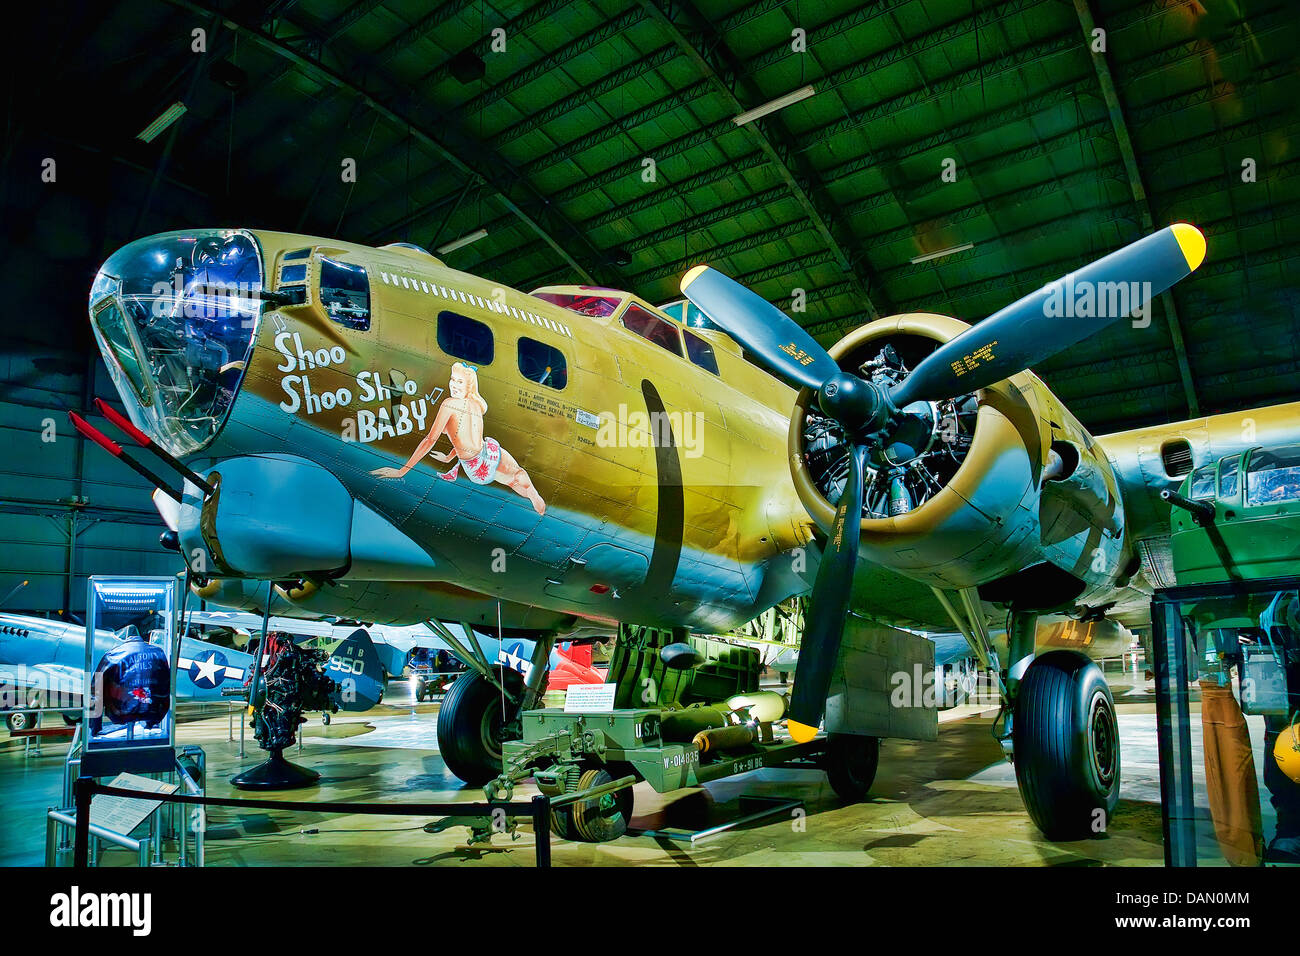 Shoo Shoo Baby is the name of a B-17 Flying Fortress in World War II, preserved and on public display at Wright Stock Photo